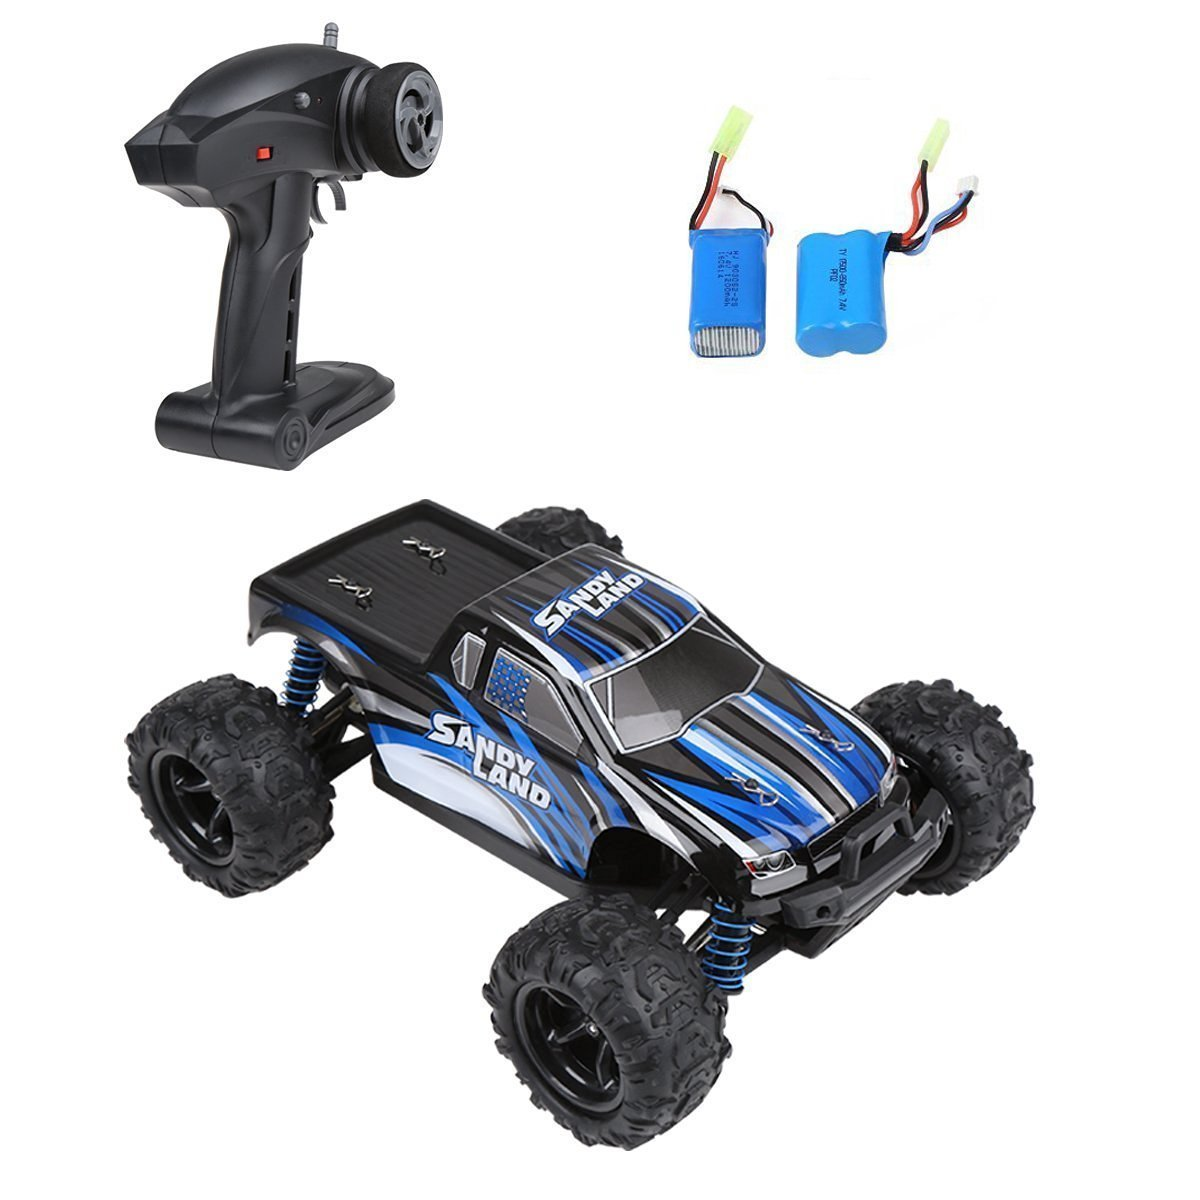 DTN 2.4Ghz 4WD Electric RC Car Offroad Remote Control Car 1:18 Scale 30MPH with an Extra 1200MAH Rechargeable Battery